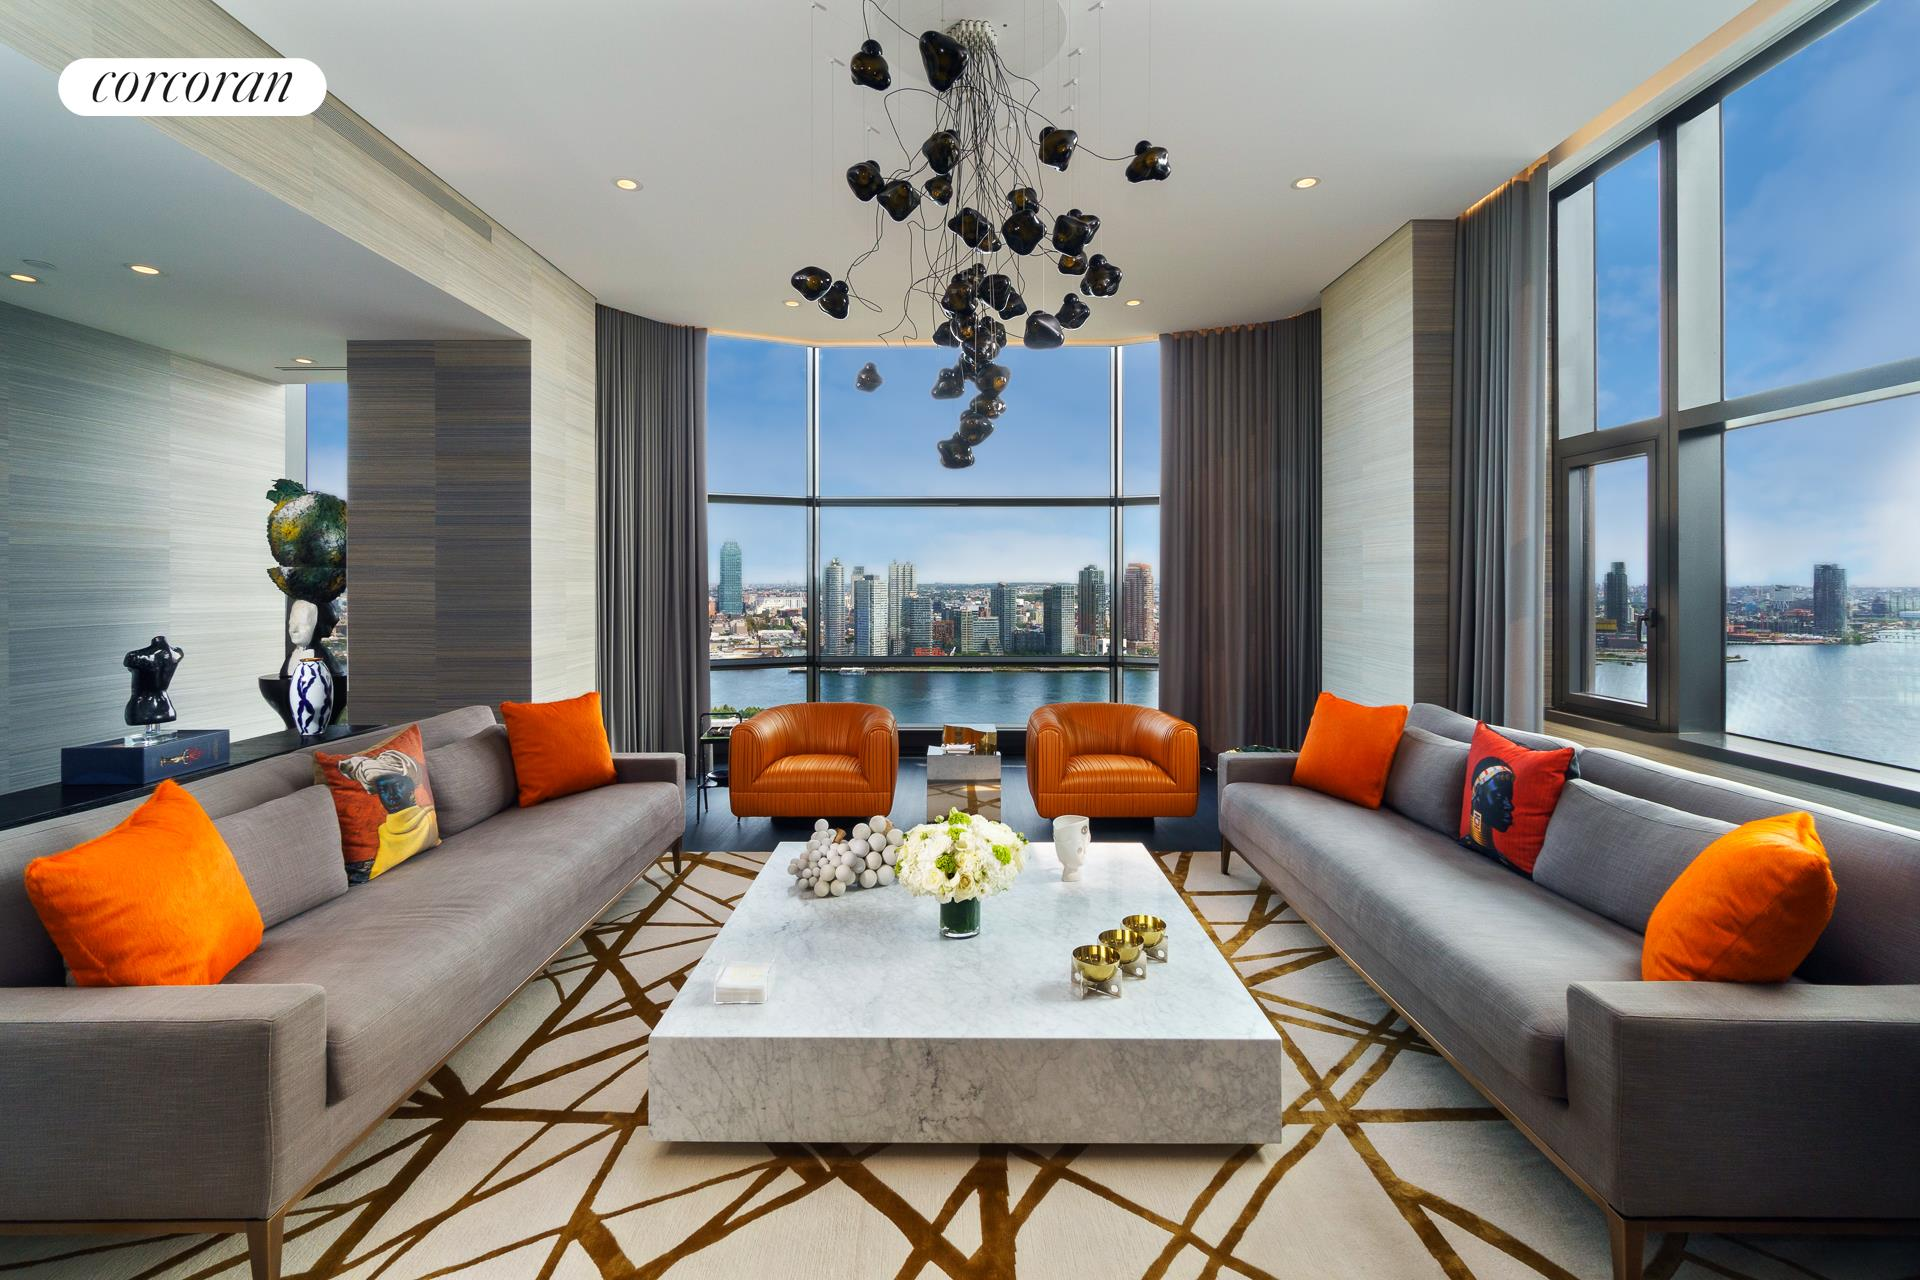 """This stunning, sun-drenched corner three bedroom, three bathroom luxury condominium has panoramic sweeping views of the East River, the United Nations, and the Empire and Chrysler buildings. Spanning approximately 2,609 square feet, this luxurious Foster + Partners designed home has ceilings up to 11'3"""", solid white-oak floors, Duravit fixtures, Dornbracht fittings, multi-zone central air conditioning with a thermostat in every room, motorized shades, a custom lighting system and a Sonos sound system. In addition there is a Savant Home Automation system that controls the various components. The residence has been beautifully decorated by renowned interior designer Robert Bowen and a parking space with valet parking transfers with the sale.  Off a semi-private elevator landing is an elegant entrance foyer that opens into a grand corner living room that is 24'3"""" by 20' and has eastern and southern exposures. This magnificent room has a wall of floor-to-ceiling bay windows which showcase the breathtaking views of the river. Adjacent, through pocket doors, is the south-facing formal dining room which also overlooks the river and provides a magnificent space for gatherings. The kitchen is superbly outfitted with Poliform white lacquer cabinetry and honed absolute black granite countertops. It is equipped with top-of-the-line appliances including a Subzero refrigerator with two freezer drawers, a Subzero wine refrigerator, a Miele oven and five burner range, a Miele microwave/convection oven, a Miele dishwasher, and a Miele warming drawer. There is also a laundry area with a Miele washer and dryer.  The extraordinary corner master bedroom suite faces south and west and has mesmerizing views of the iconic Manhattan skyline. The suite features an incredible dressing room that is 19'3"""" long as well as a separate walk-in closet; both have custom cabinetry and lighting. The lavish windowed en-suite master bathroom is clad in Sivec white marble with a Foster + Partners custom t"""